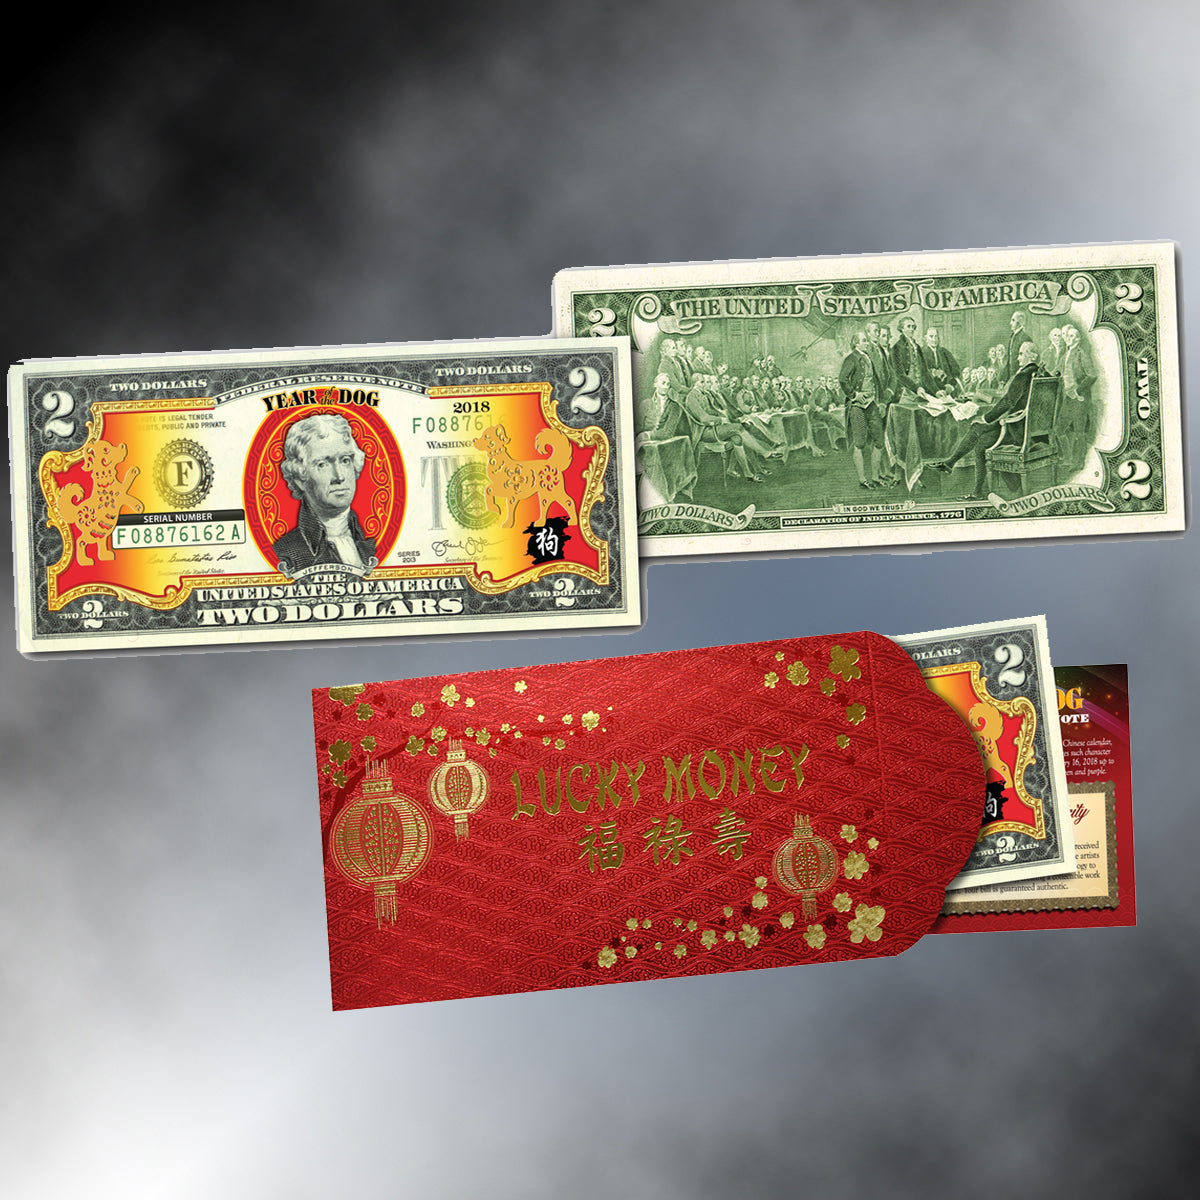 2018 - Year of the Dog Hologrammed $2 Bill